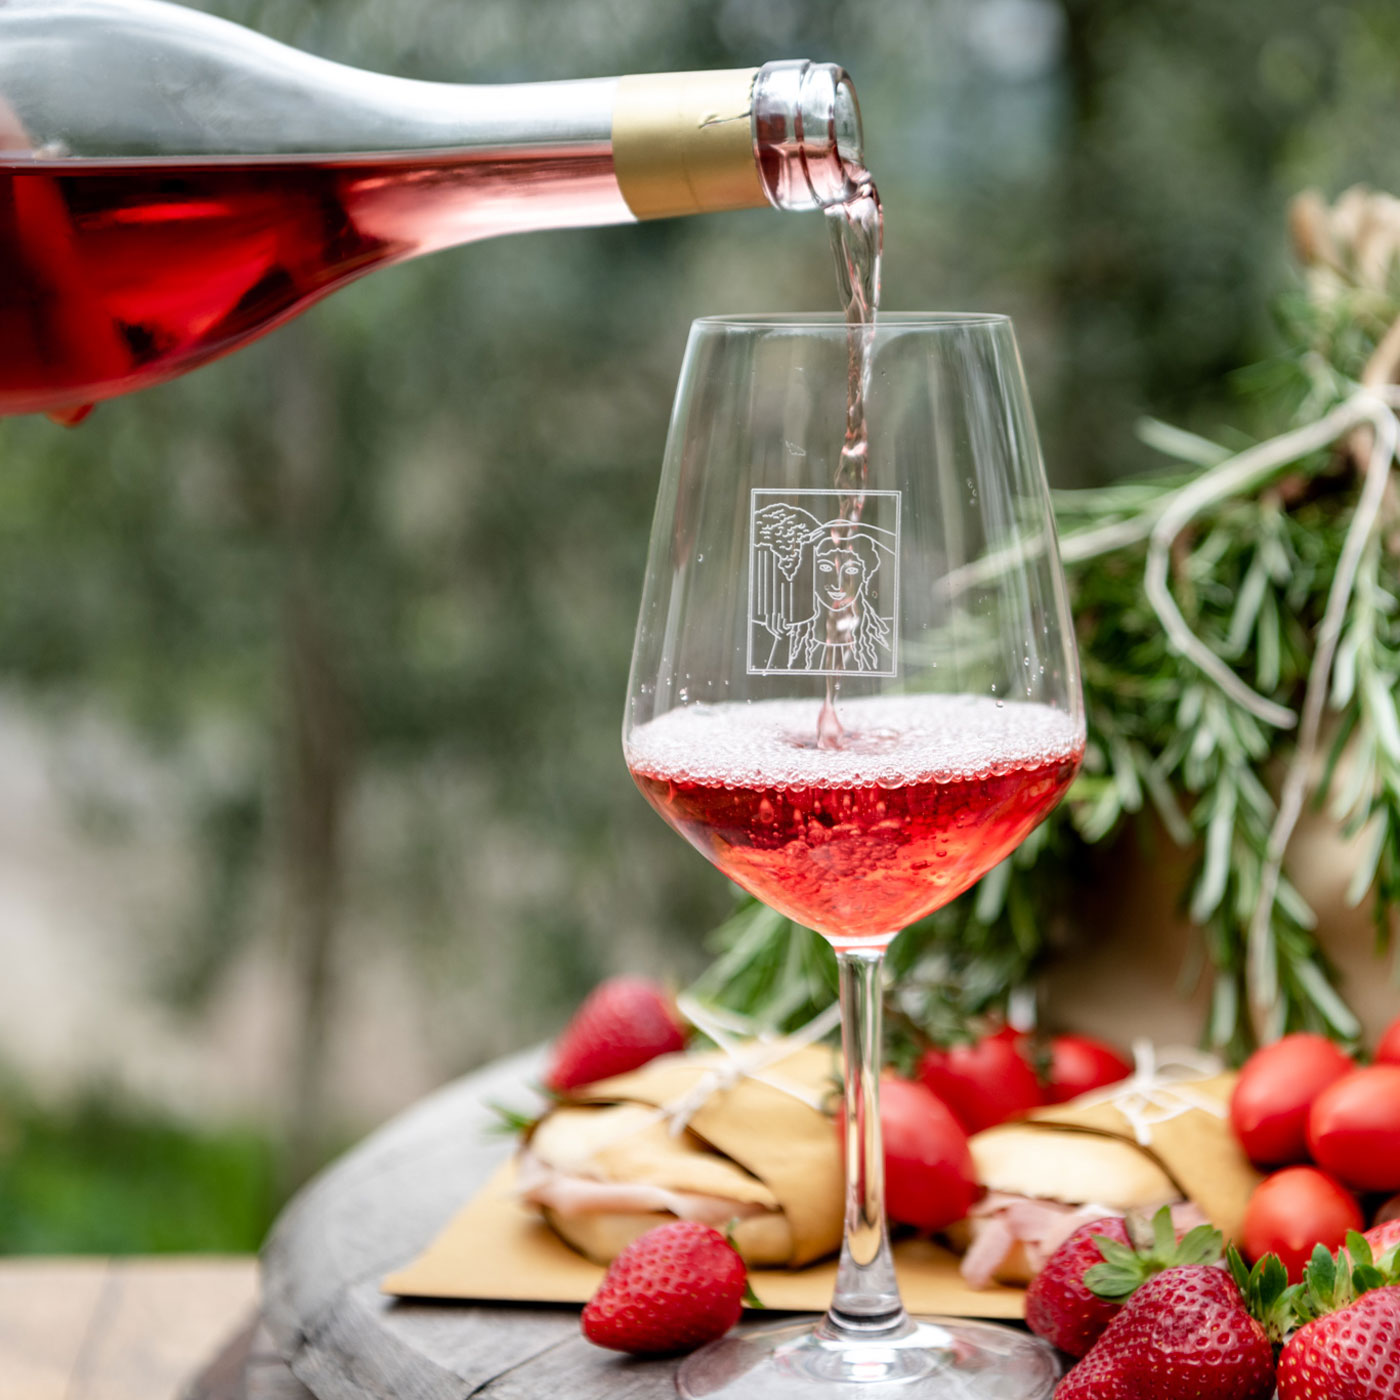 Enjoy Rosé di Montemaggio during the summer with a light lunch